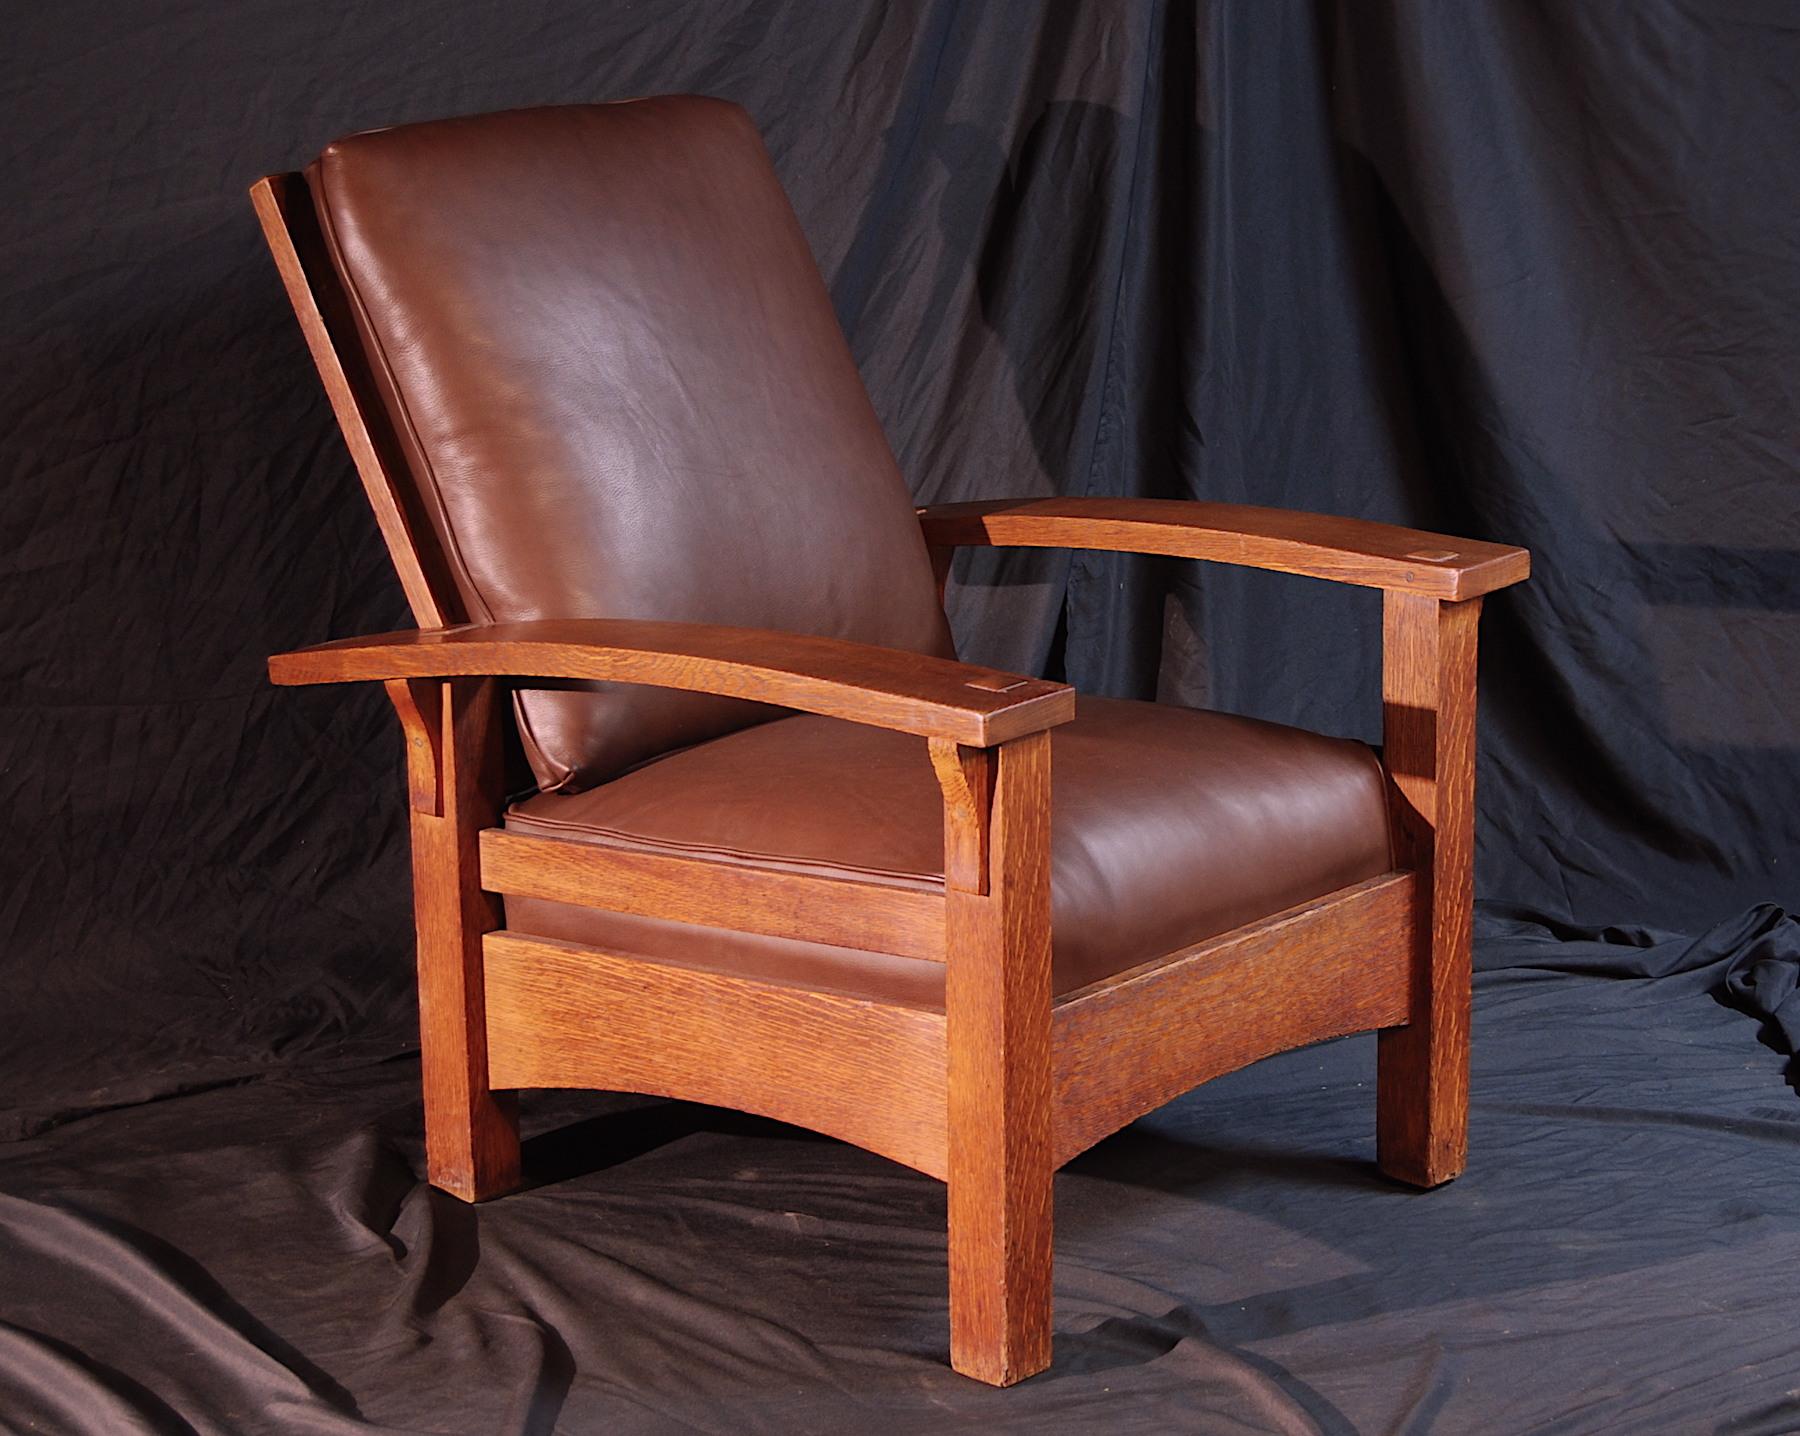 mission recliner chair plans upholstered living room chairs voorhees craftsman oak furniture gustav stickley